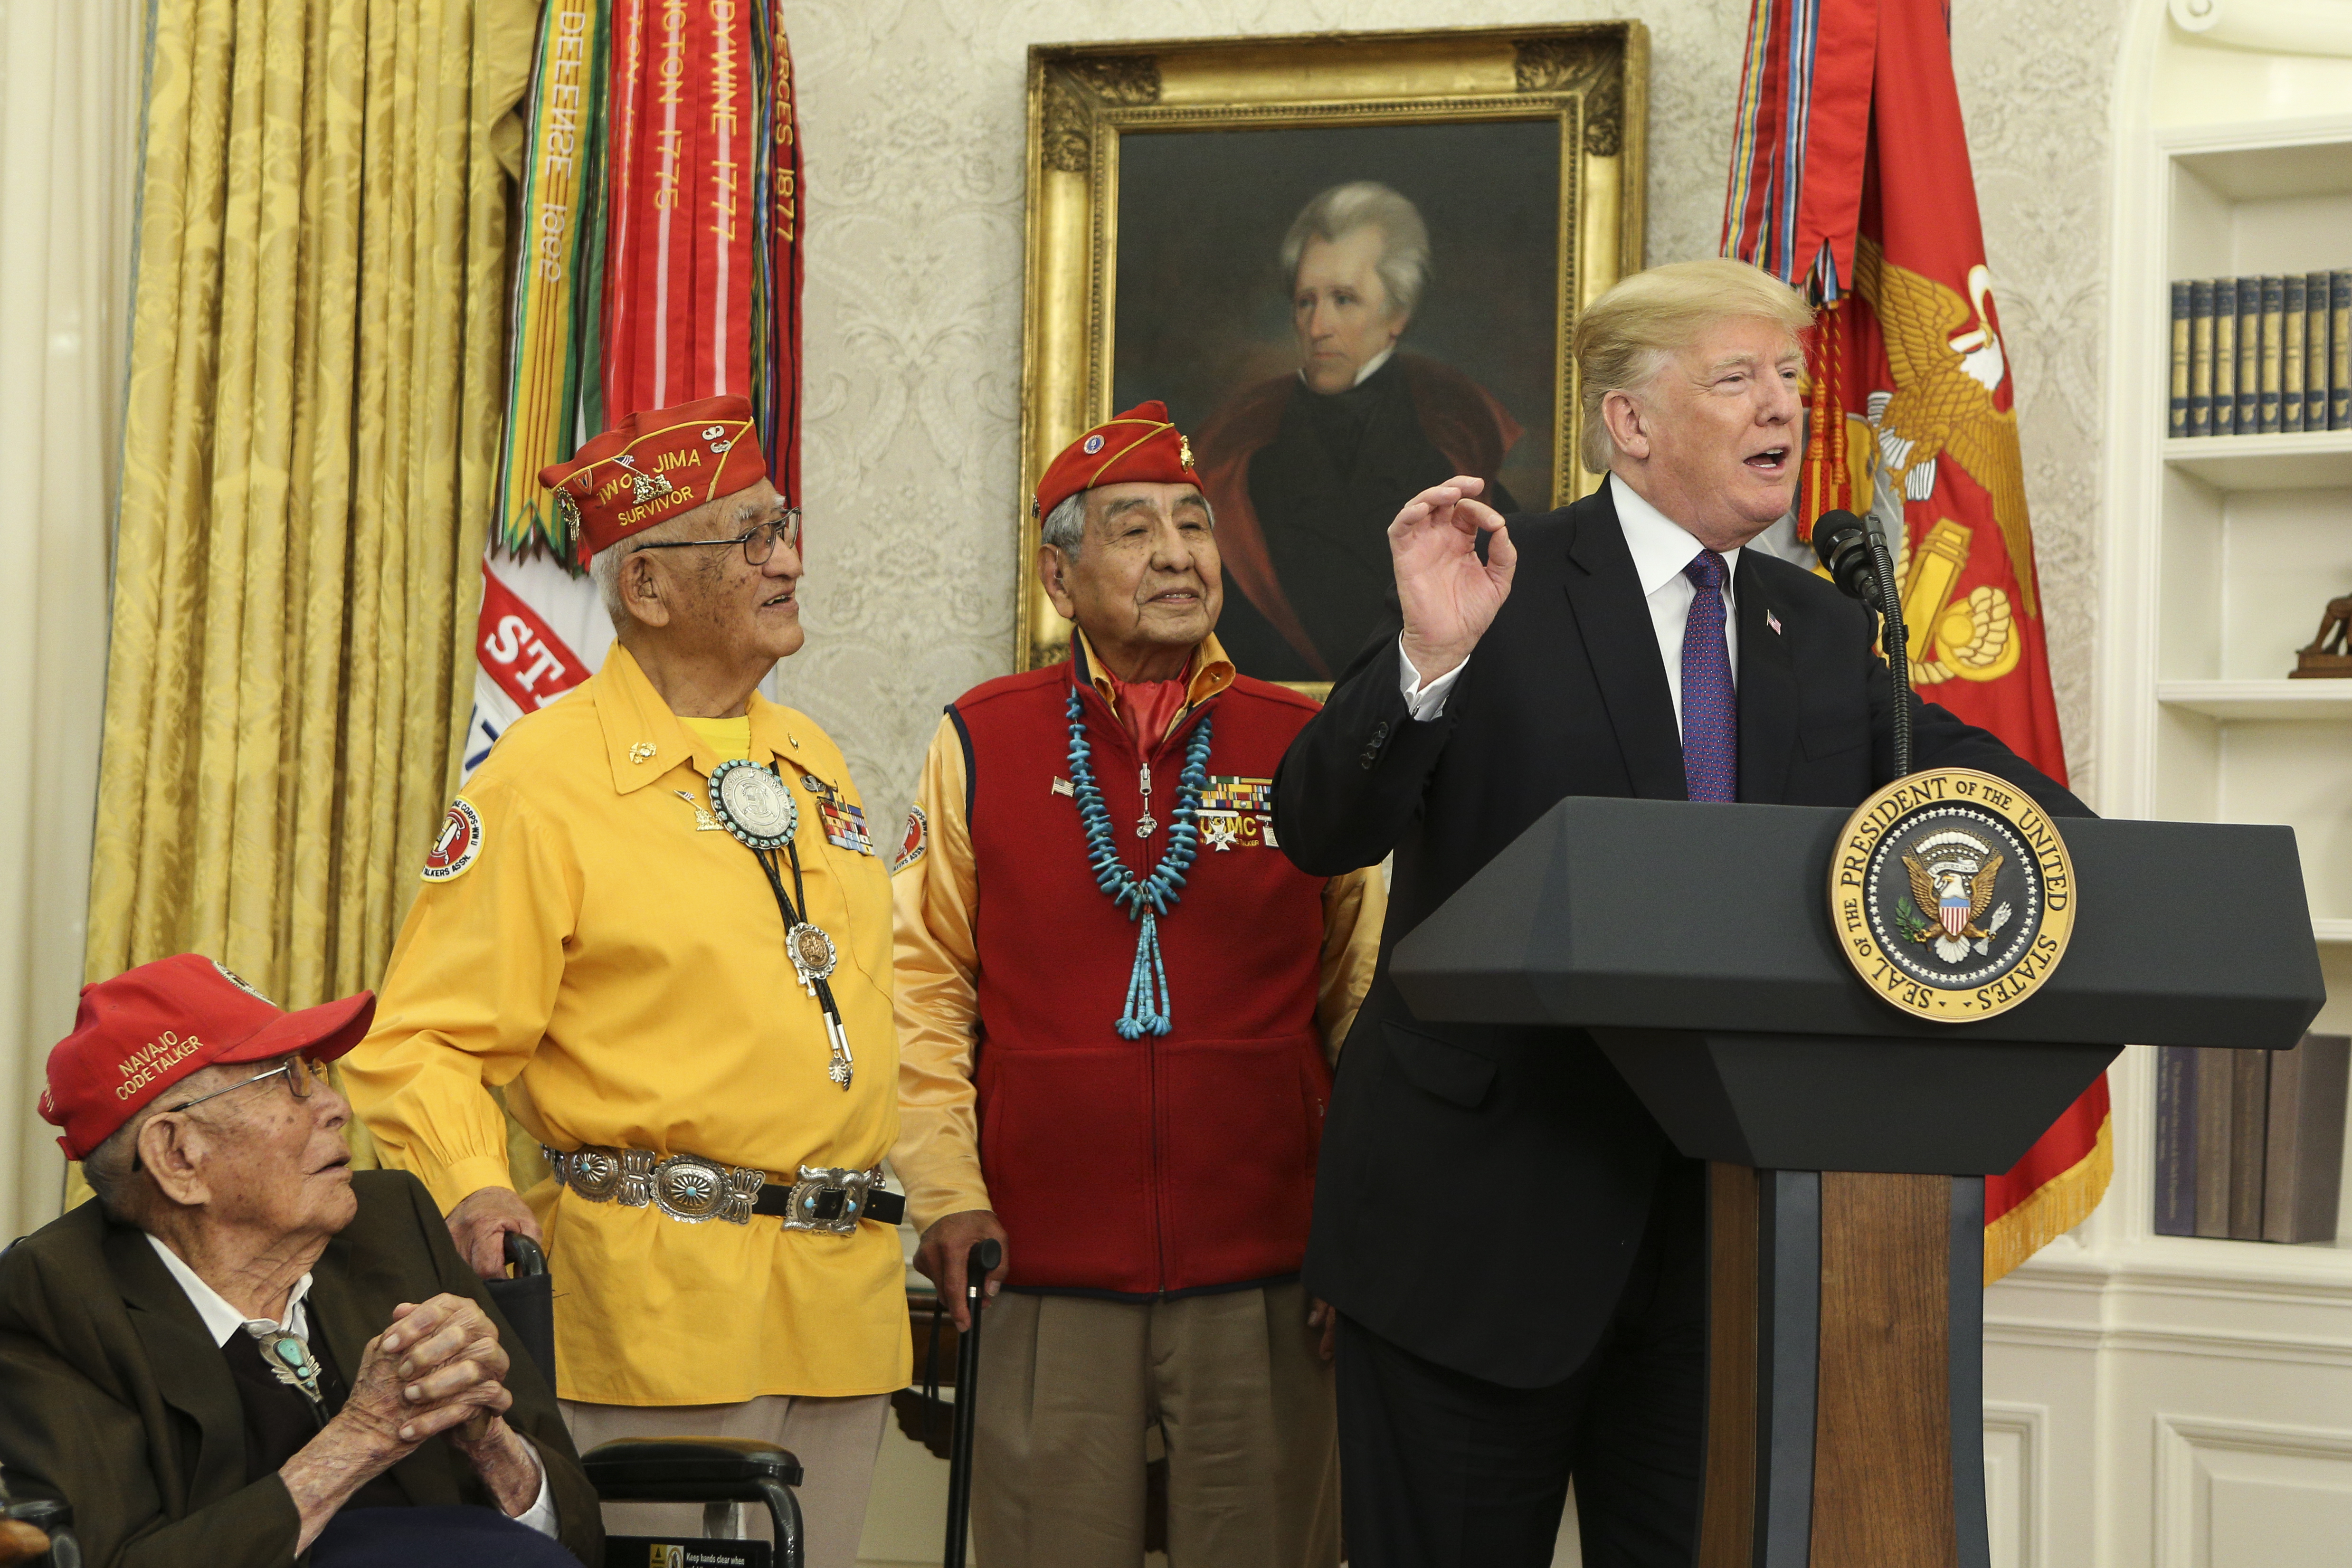 WASHINGTON, DC - NOVEMBER 27: (AFP OUT) U.S. President Donald Trump (R) speaks during an event honoring members of the Native American code talkers in the Oval Office of the White House, on November 27, 2017 in Washington, DC. Trump stated, 'You were here long before any of us were here. Although we have a representative in Congress who they say was here a long time ago. They call her Pocahontas.' in reference to his nickname for Sen. Elizabeth Warren. (Photo by Oliver Contreras-Pool/Getty Images)